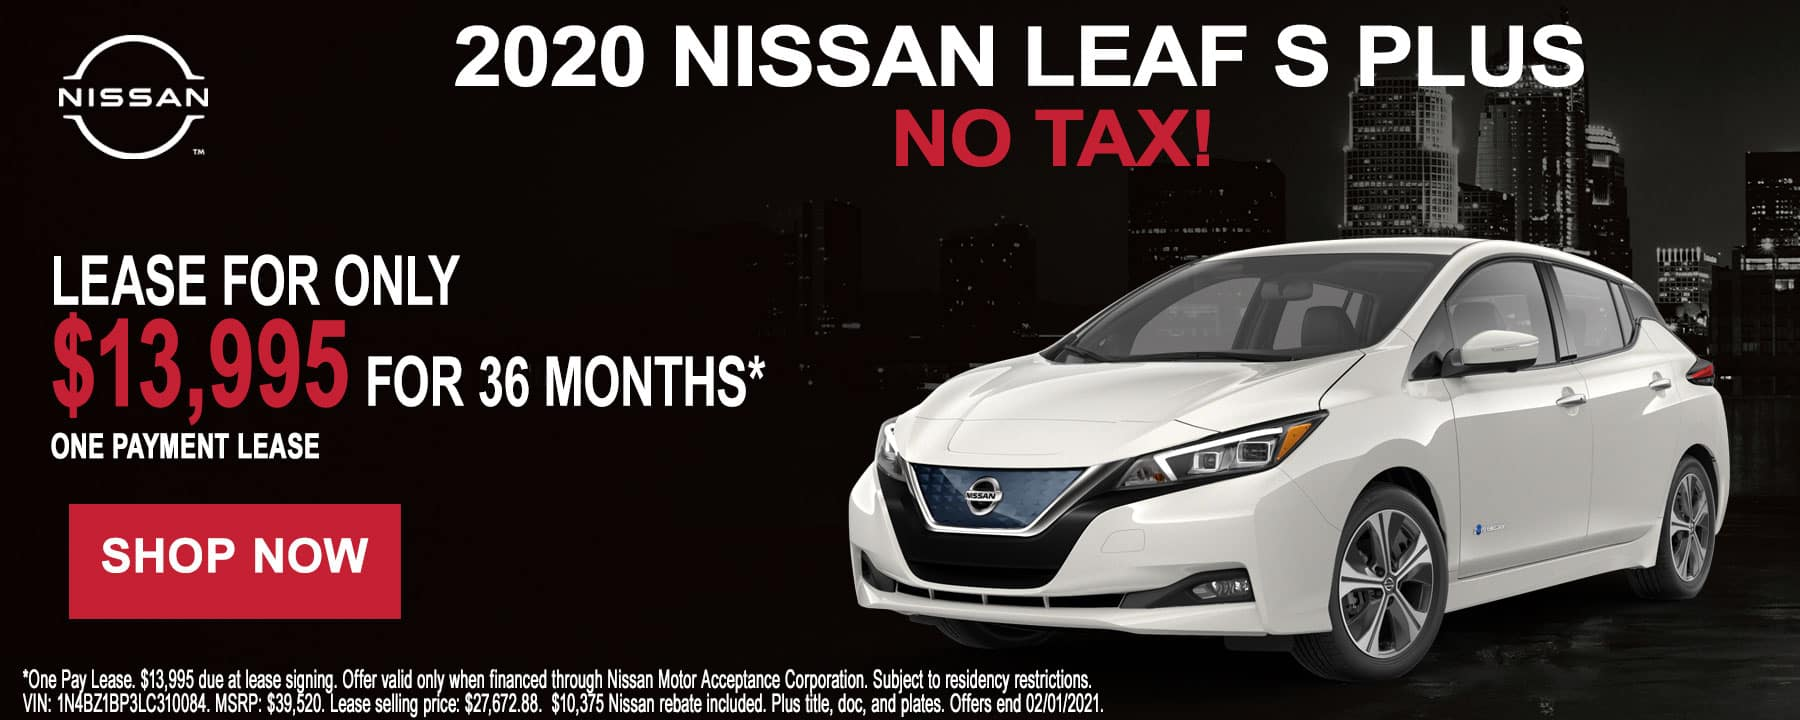 2020 Nissan LEAF January Lease Offer at Star Nissan